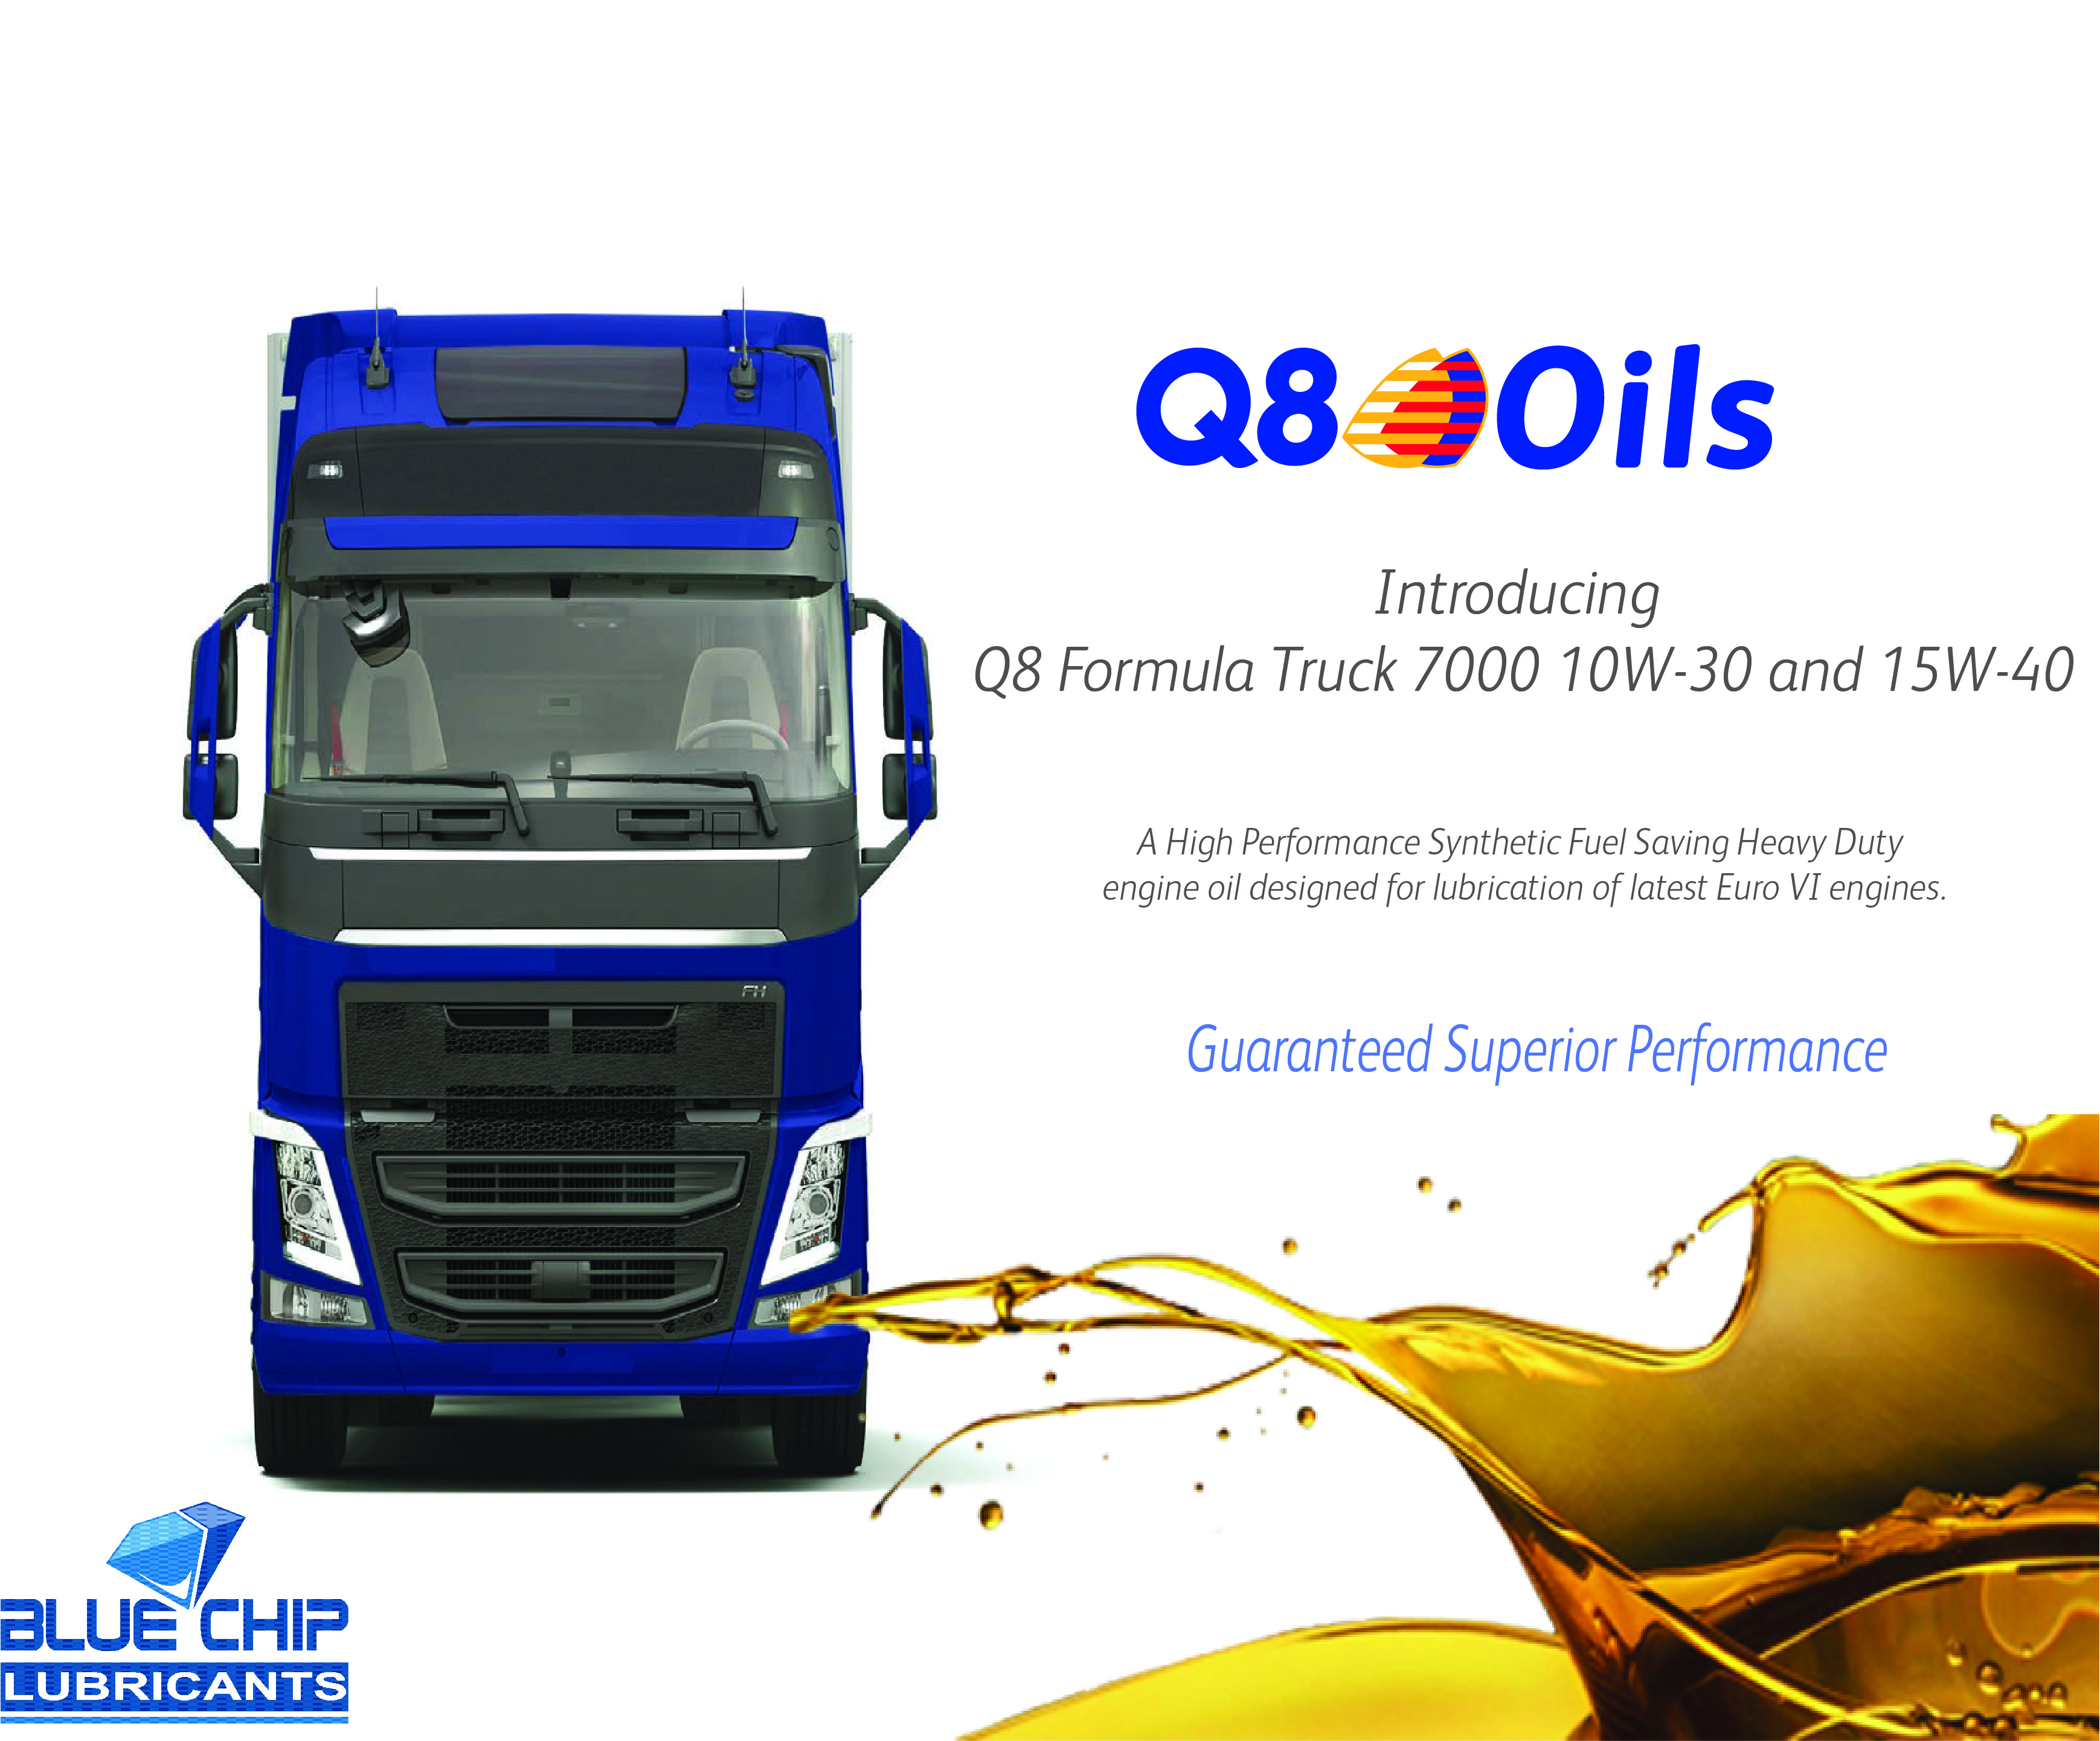 Q8Oils Introduces a New Super High Performance Diesel engine oil